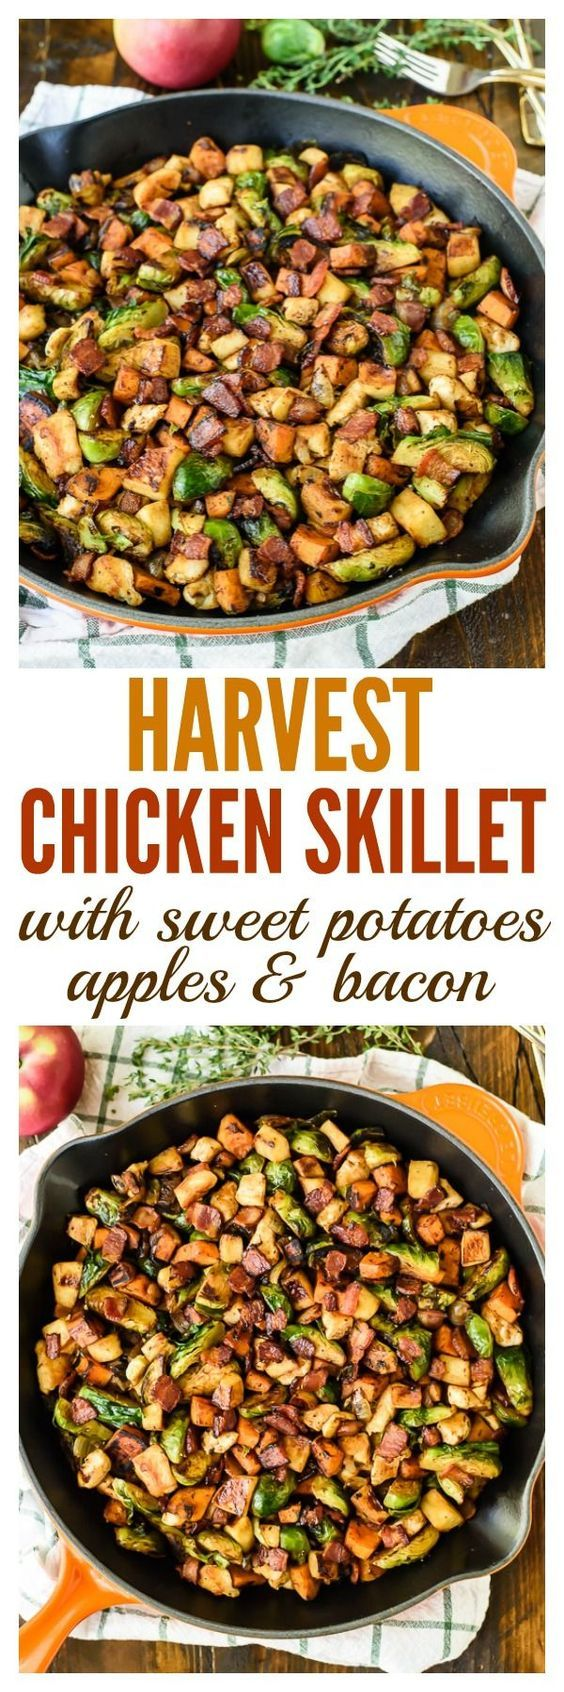 Harvest Chicken Skillet with Sweet Potatoes, Apples, Brussels Sprouts and Bacon. An easy, healthy one pan dinner! {paleo, whole 30} @wellplated